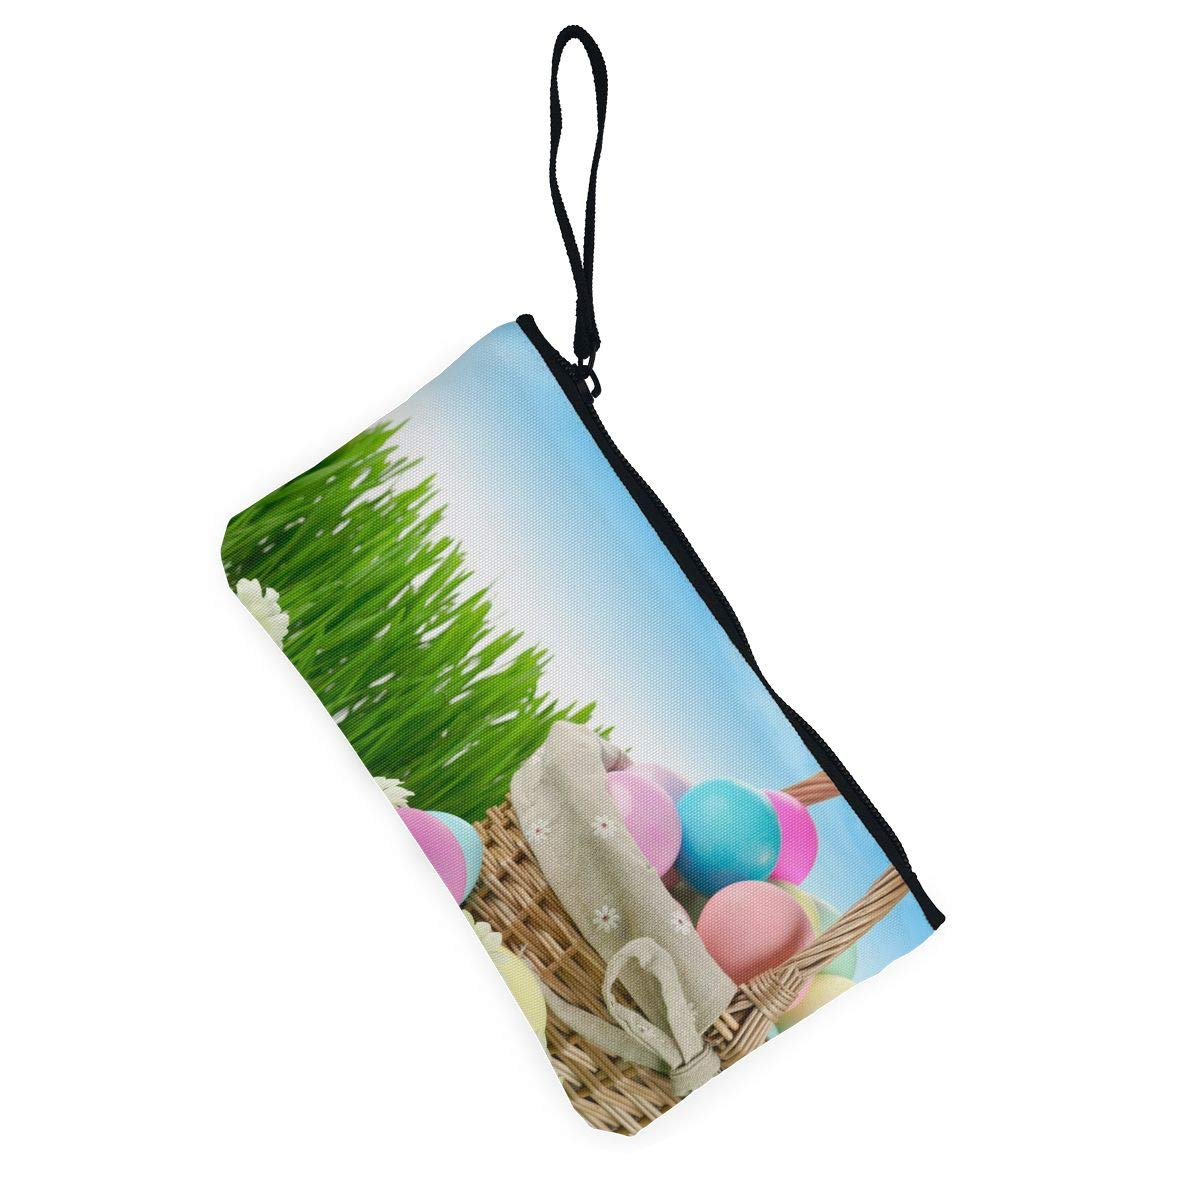 Maple Memories Easter Eggs Basket Portable Canvas Coin Purse Change Purse Pouch Mini Wallet Gifts For Women Girls